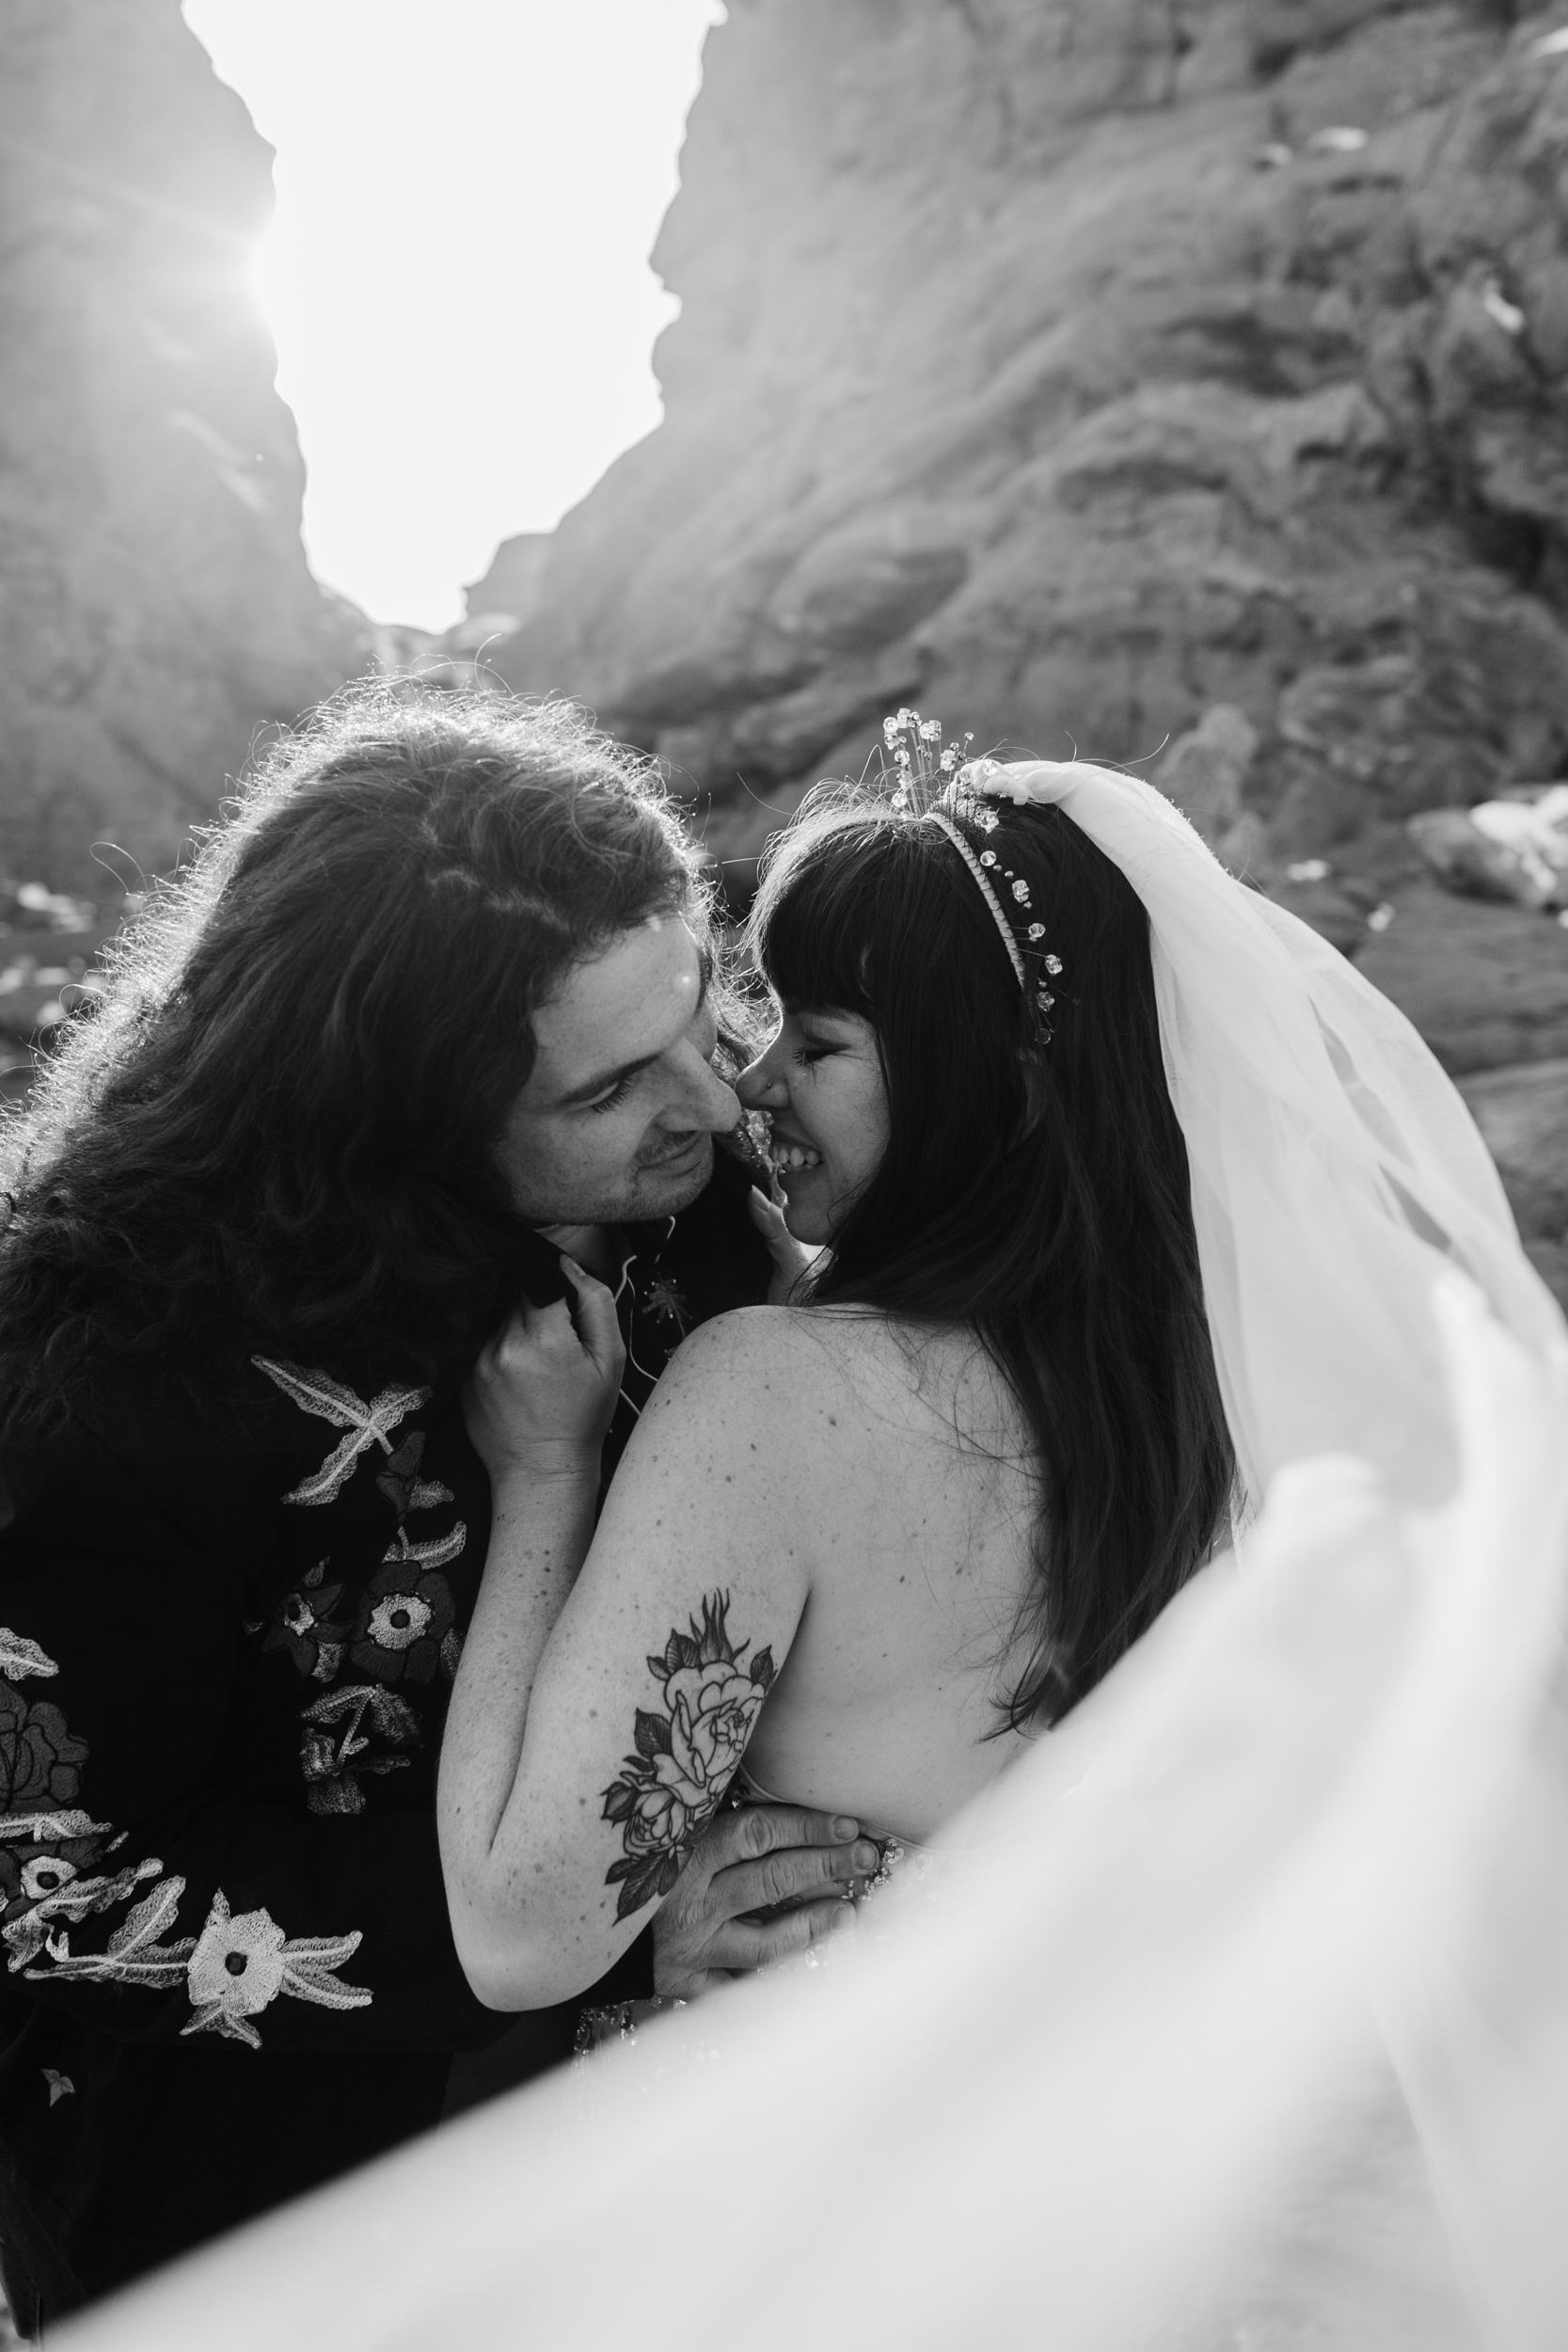 adventure wedding session in arches national park | moab elopement photographer | the hearnes adventure photography